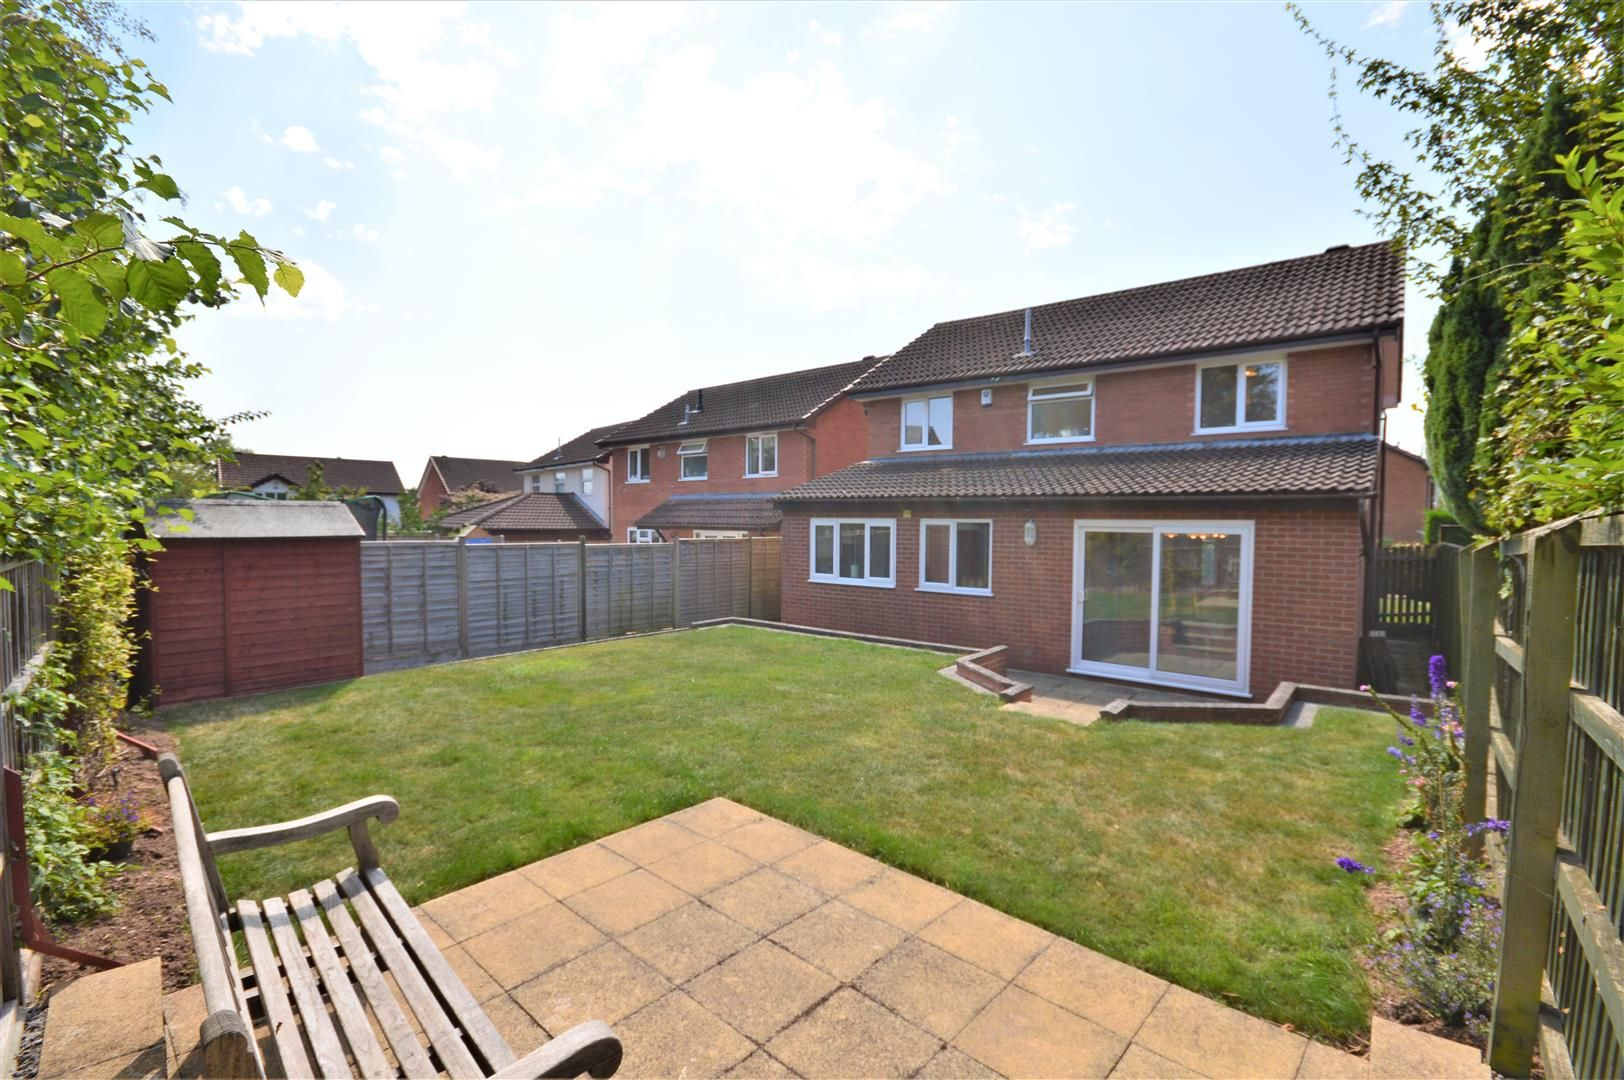 4 bed detached for sale in Hereford 18